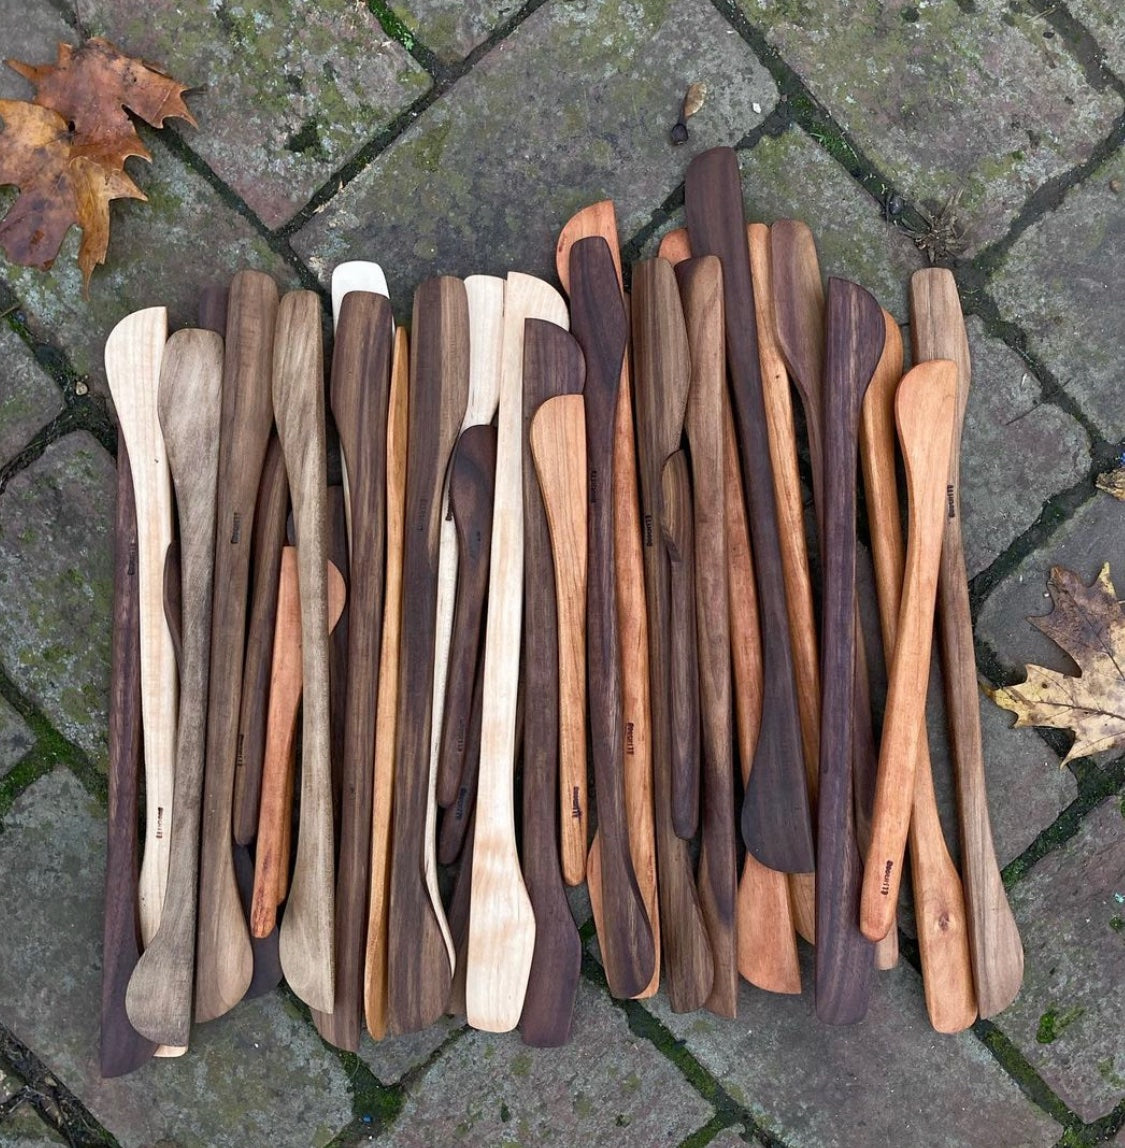 Handmade Wooden Utensils